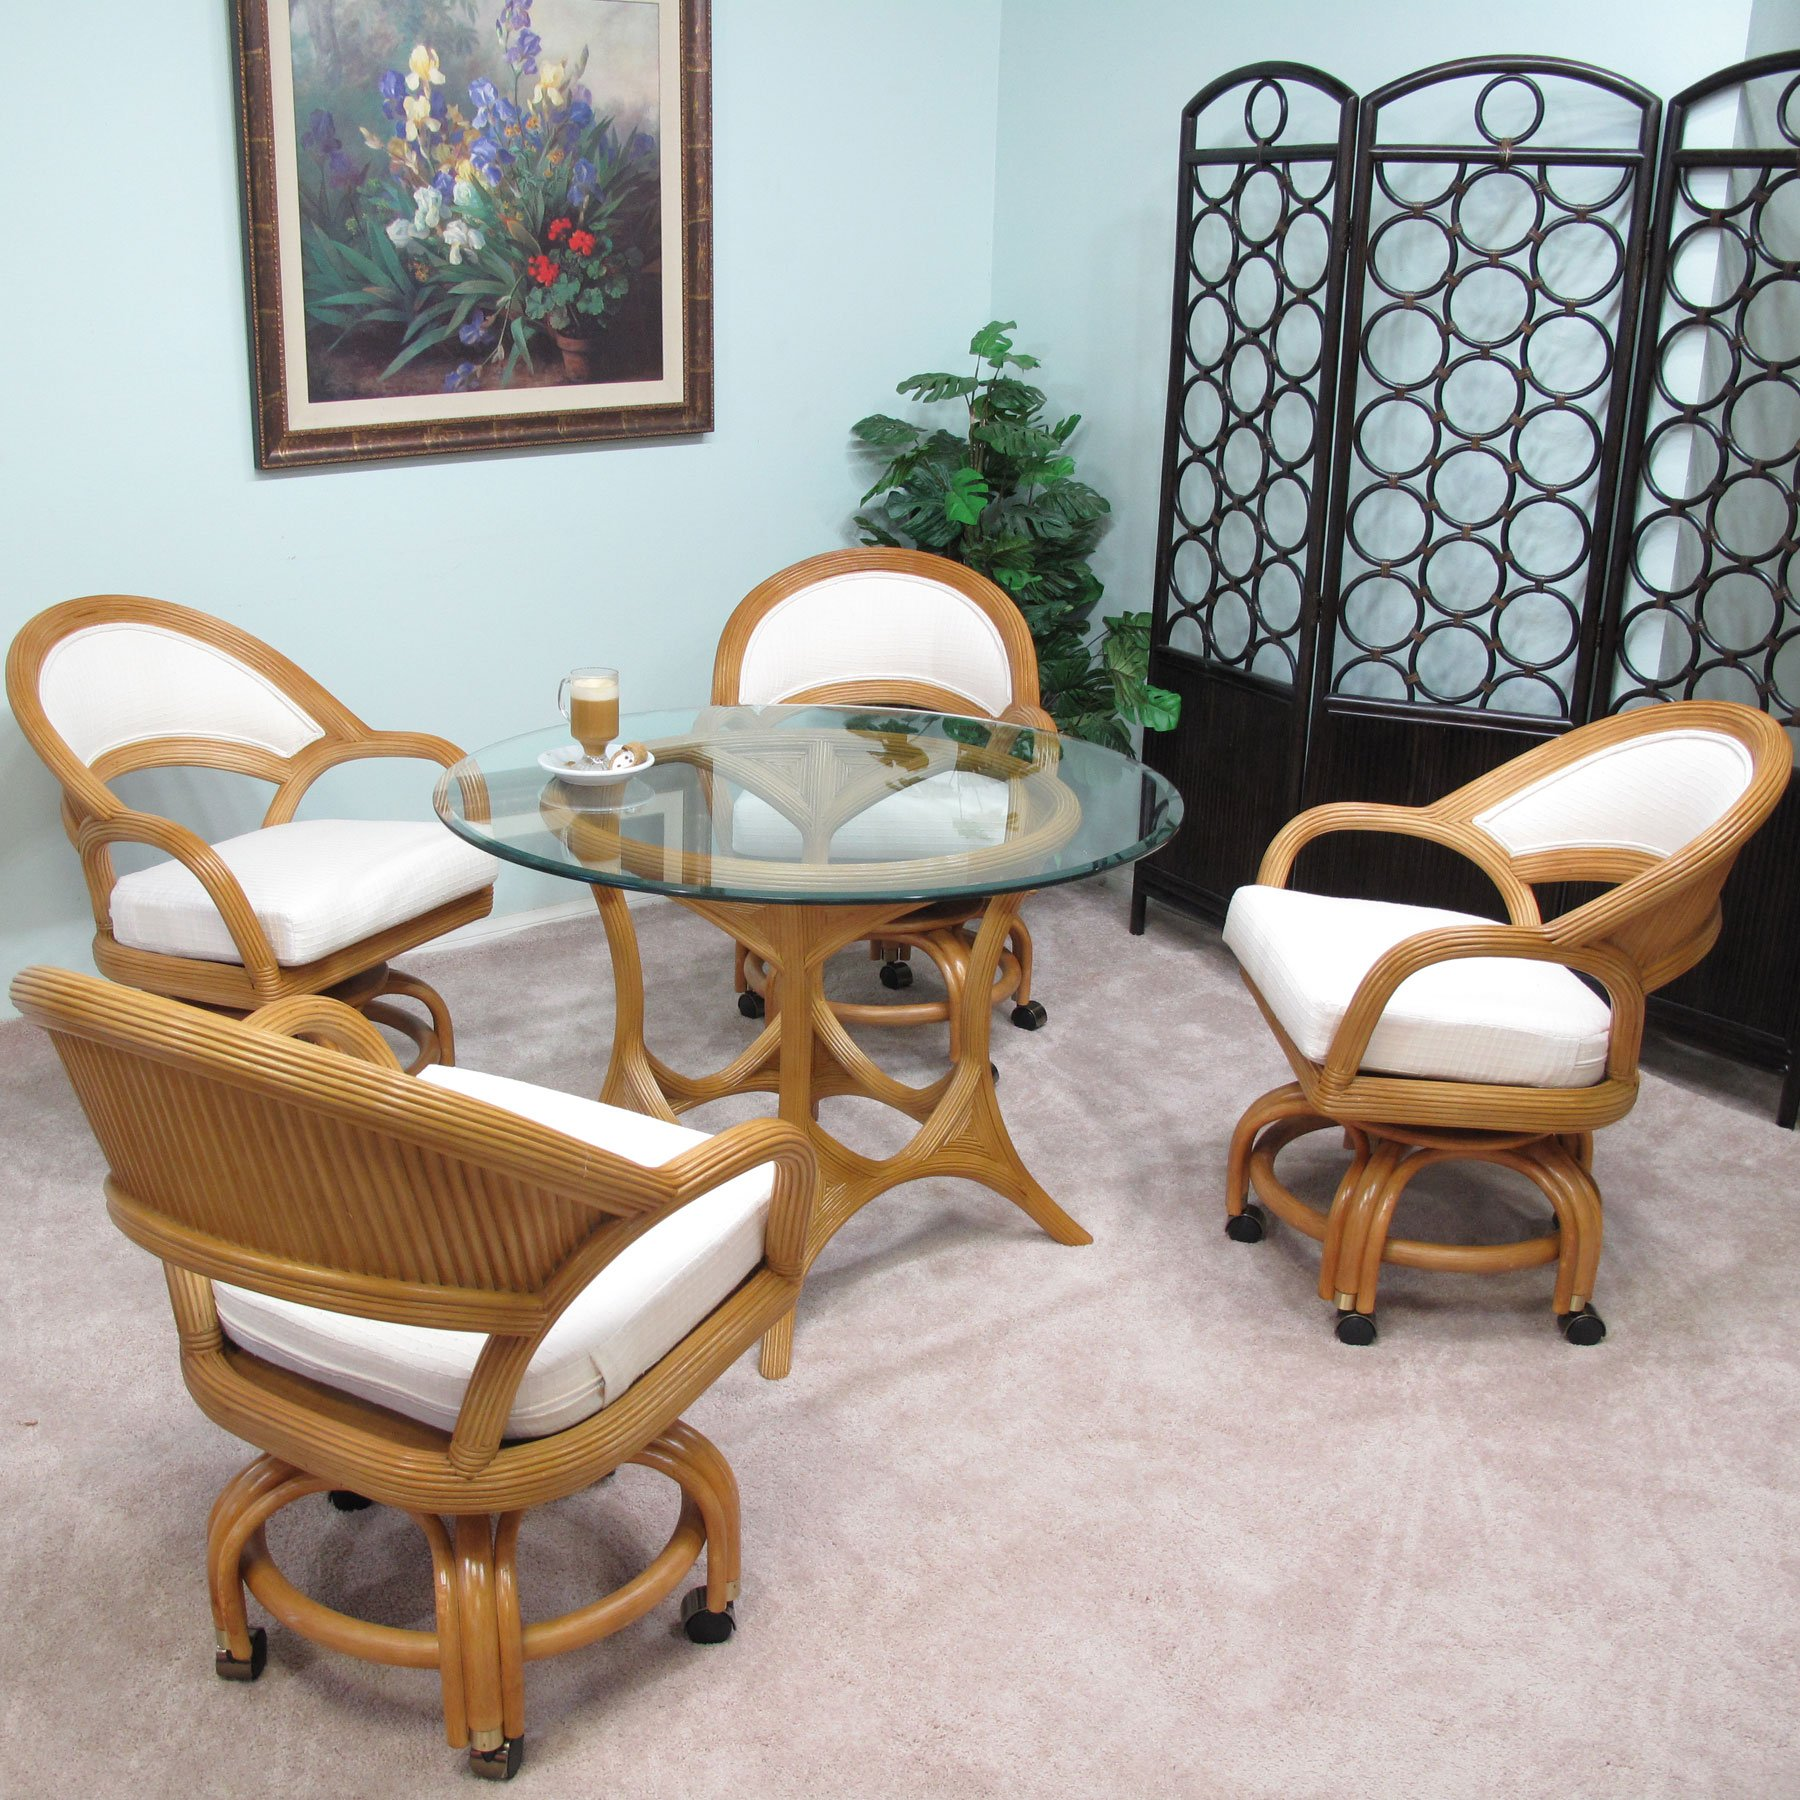 Made in USA Rattan Finese Dining Caster Chair Table Gaming Furniture 5PC Set